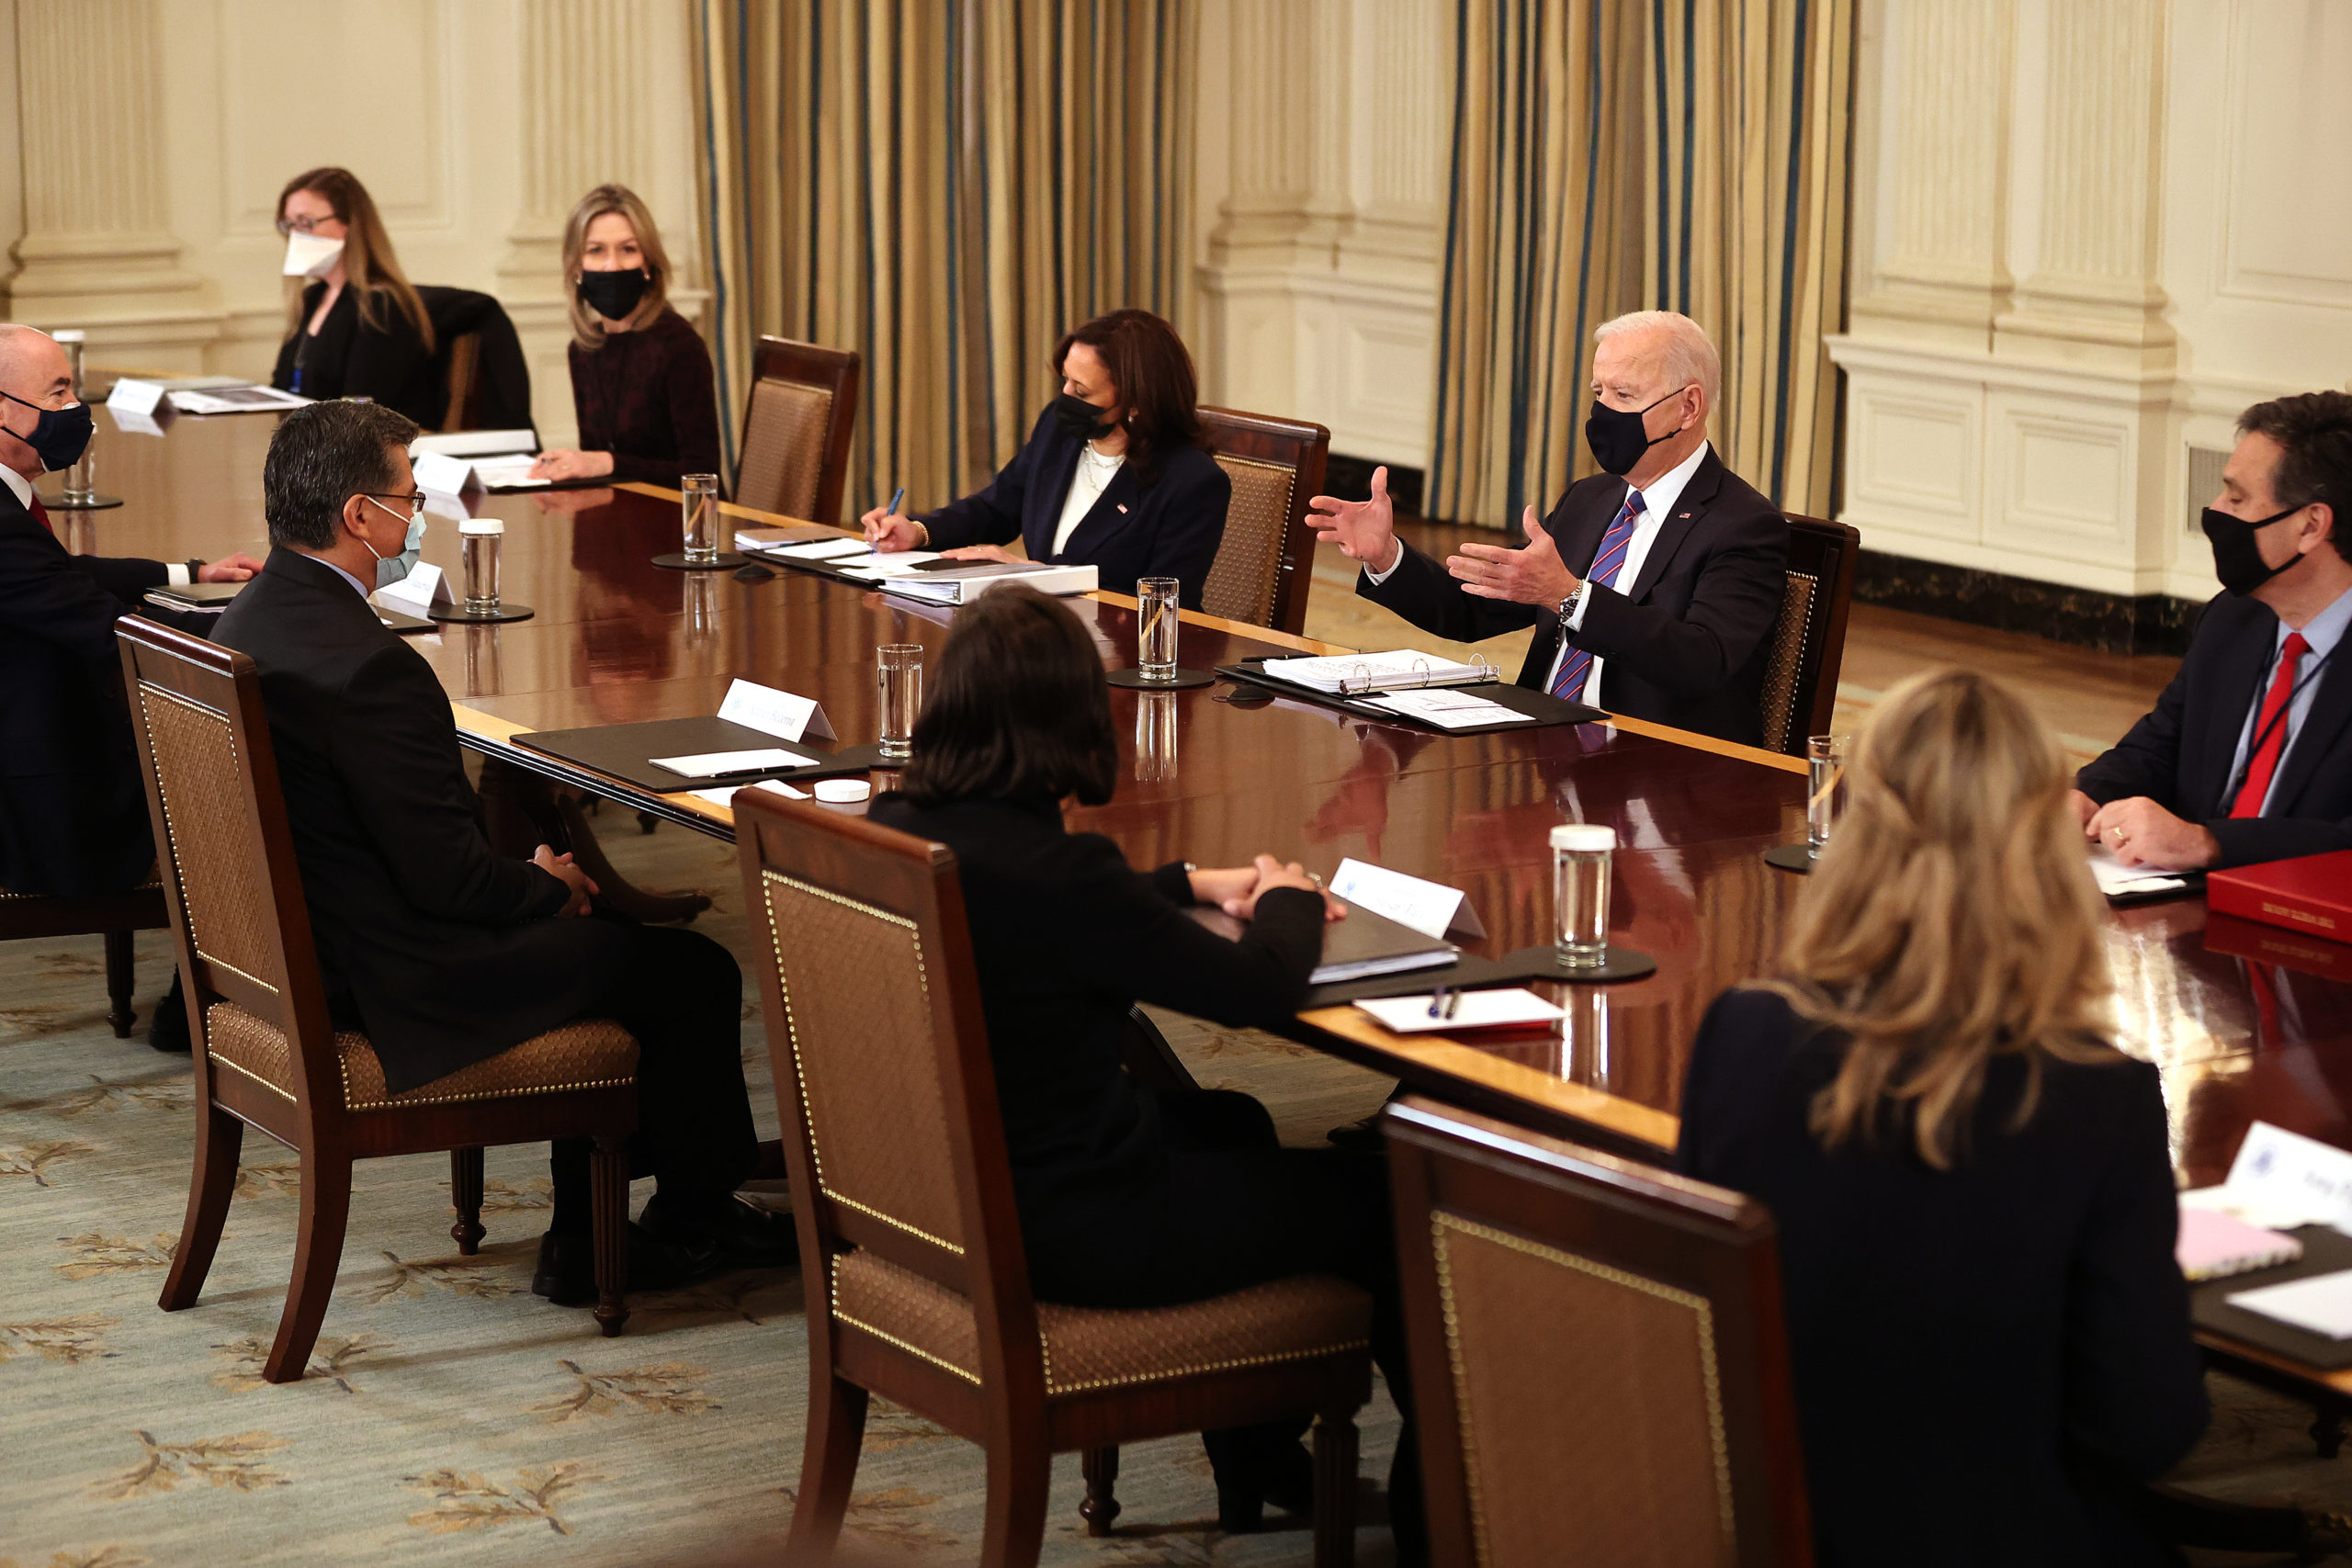 President Joe Biden and Vice President Kamala Harris meet with members of the administration's cabinet on Wednesday. (Chip Somodevilla/Getty Images)